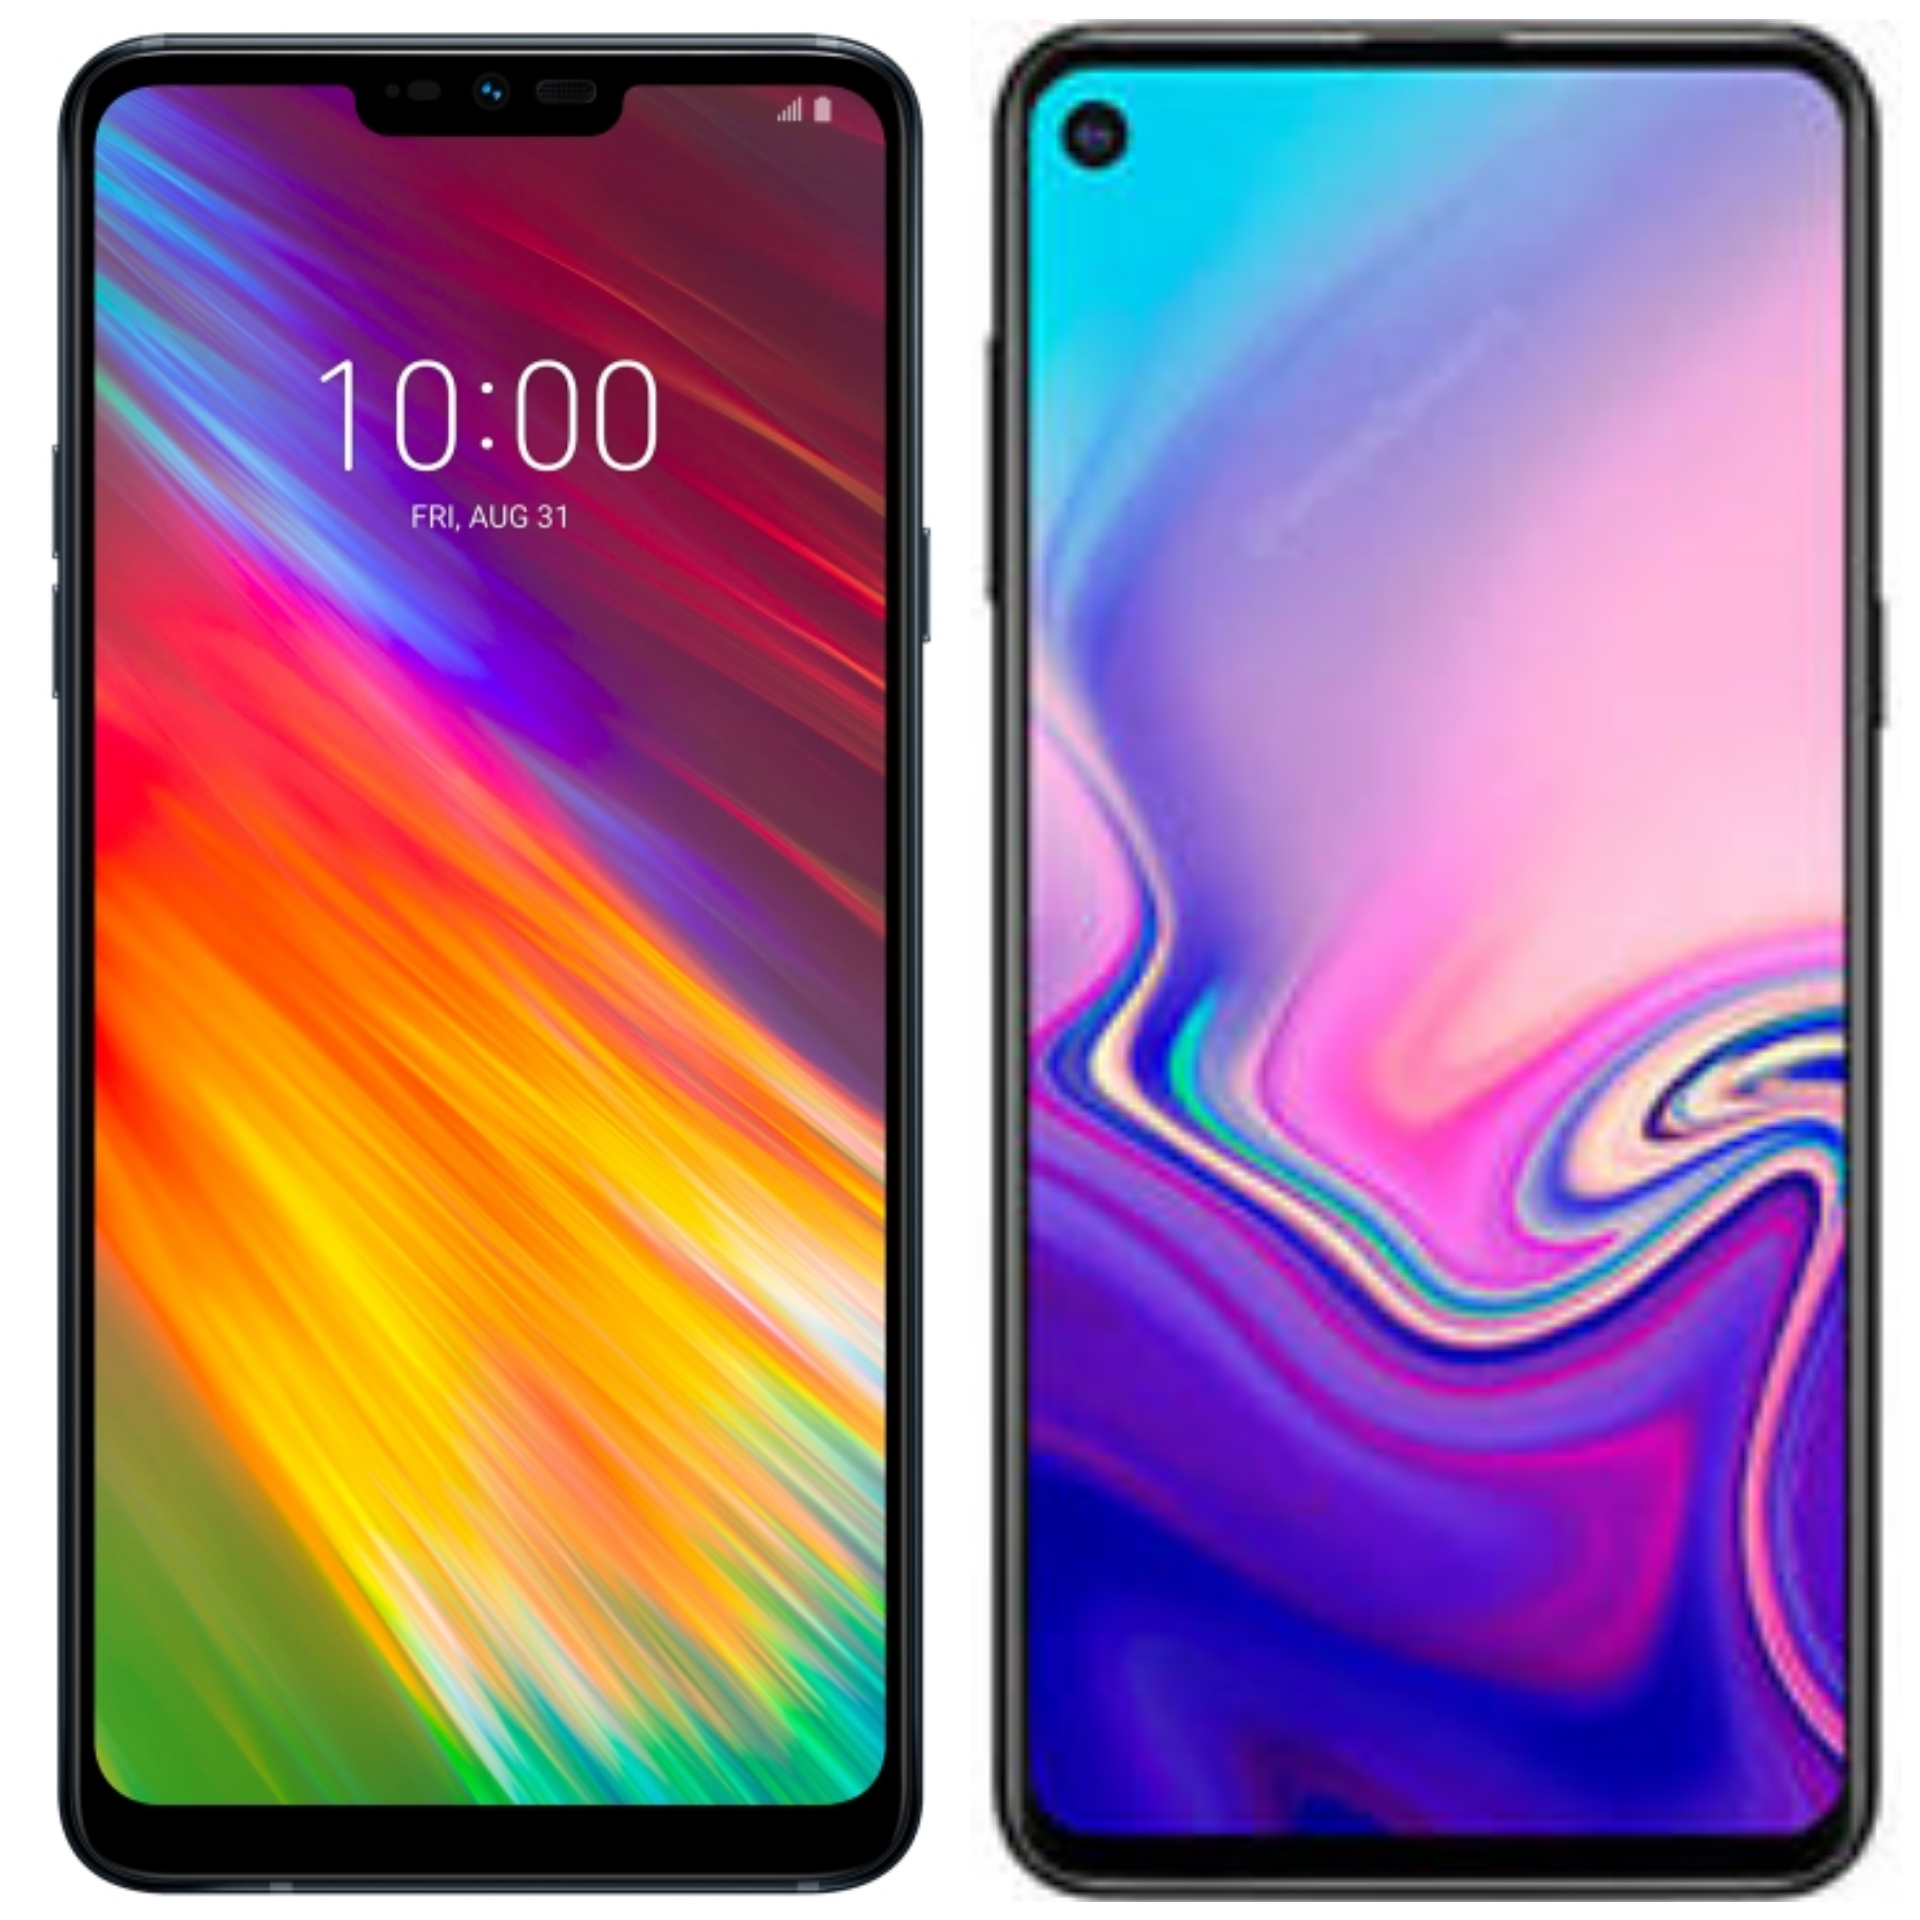 LG G8 and Galaxy A60.